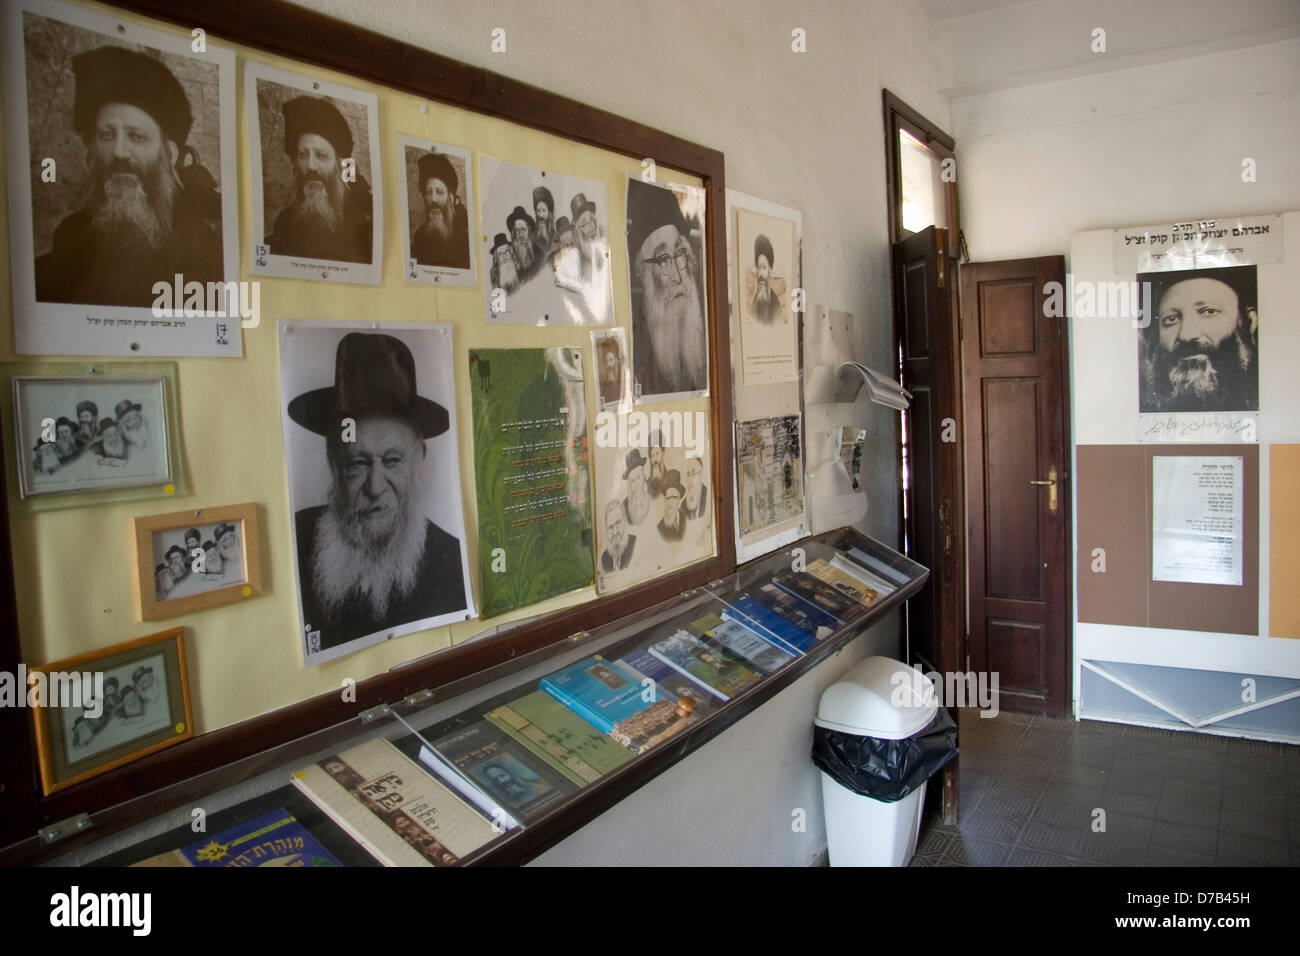 the house of harav Abraham Isaac Hacohen Kook in jerusalem - Stock Image